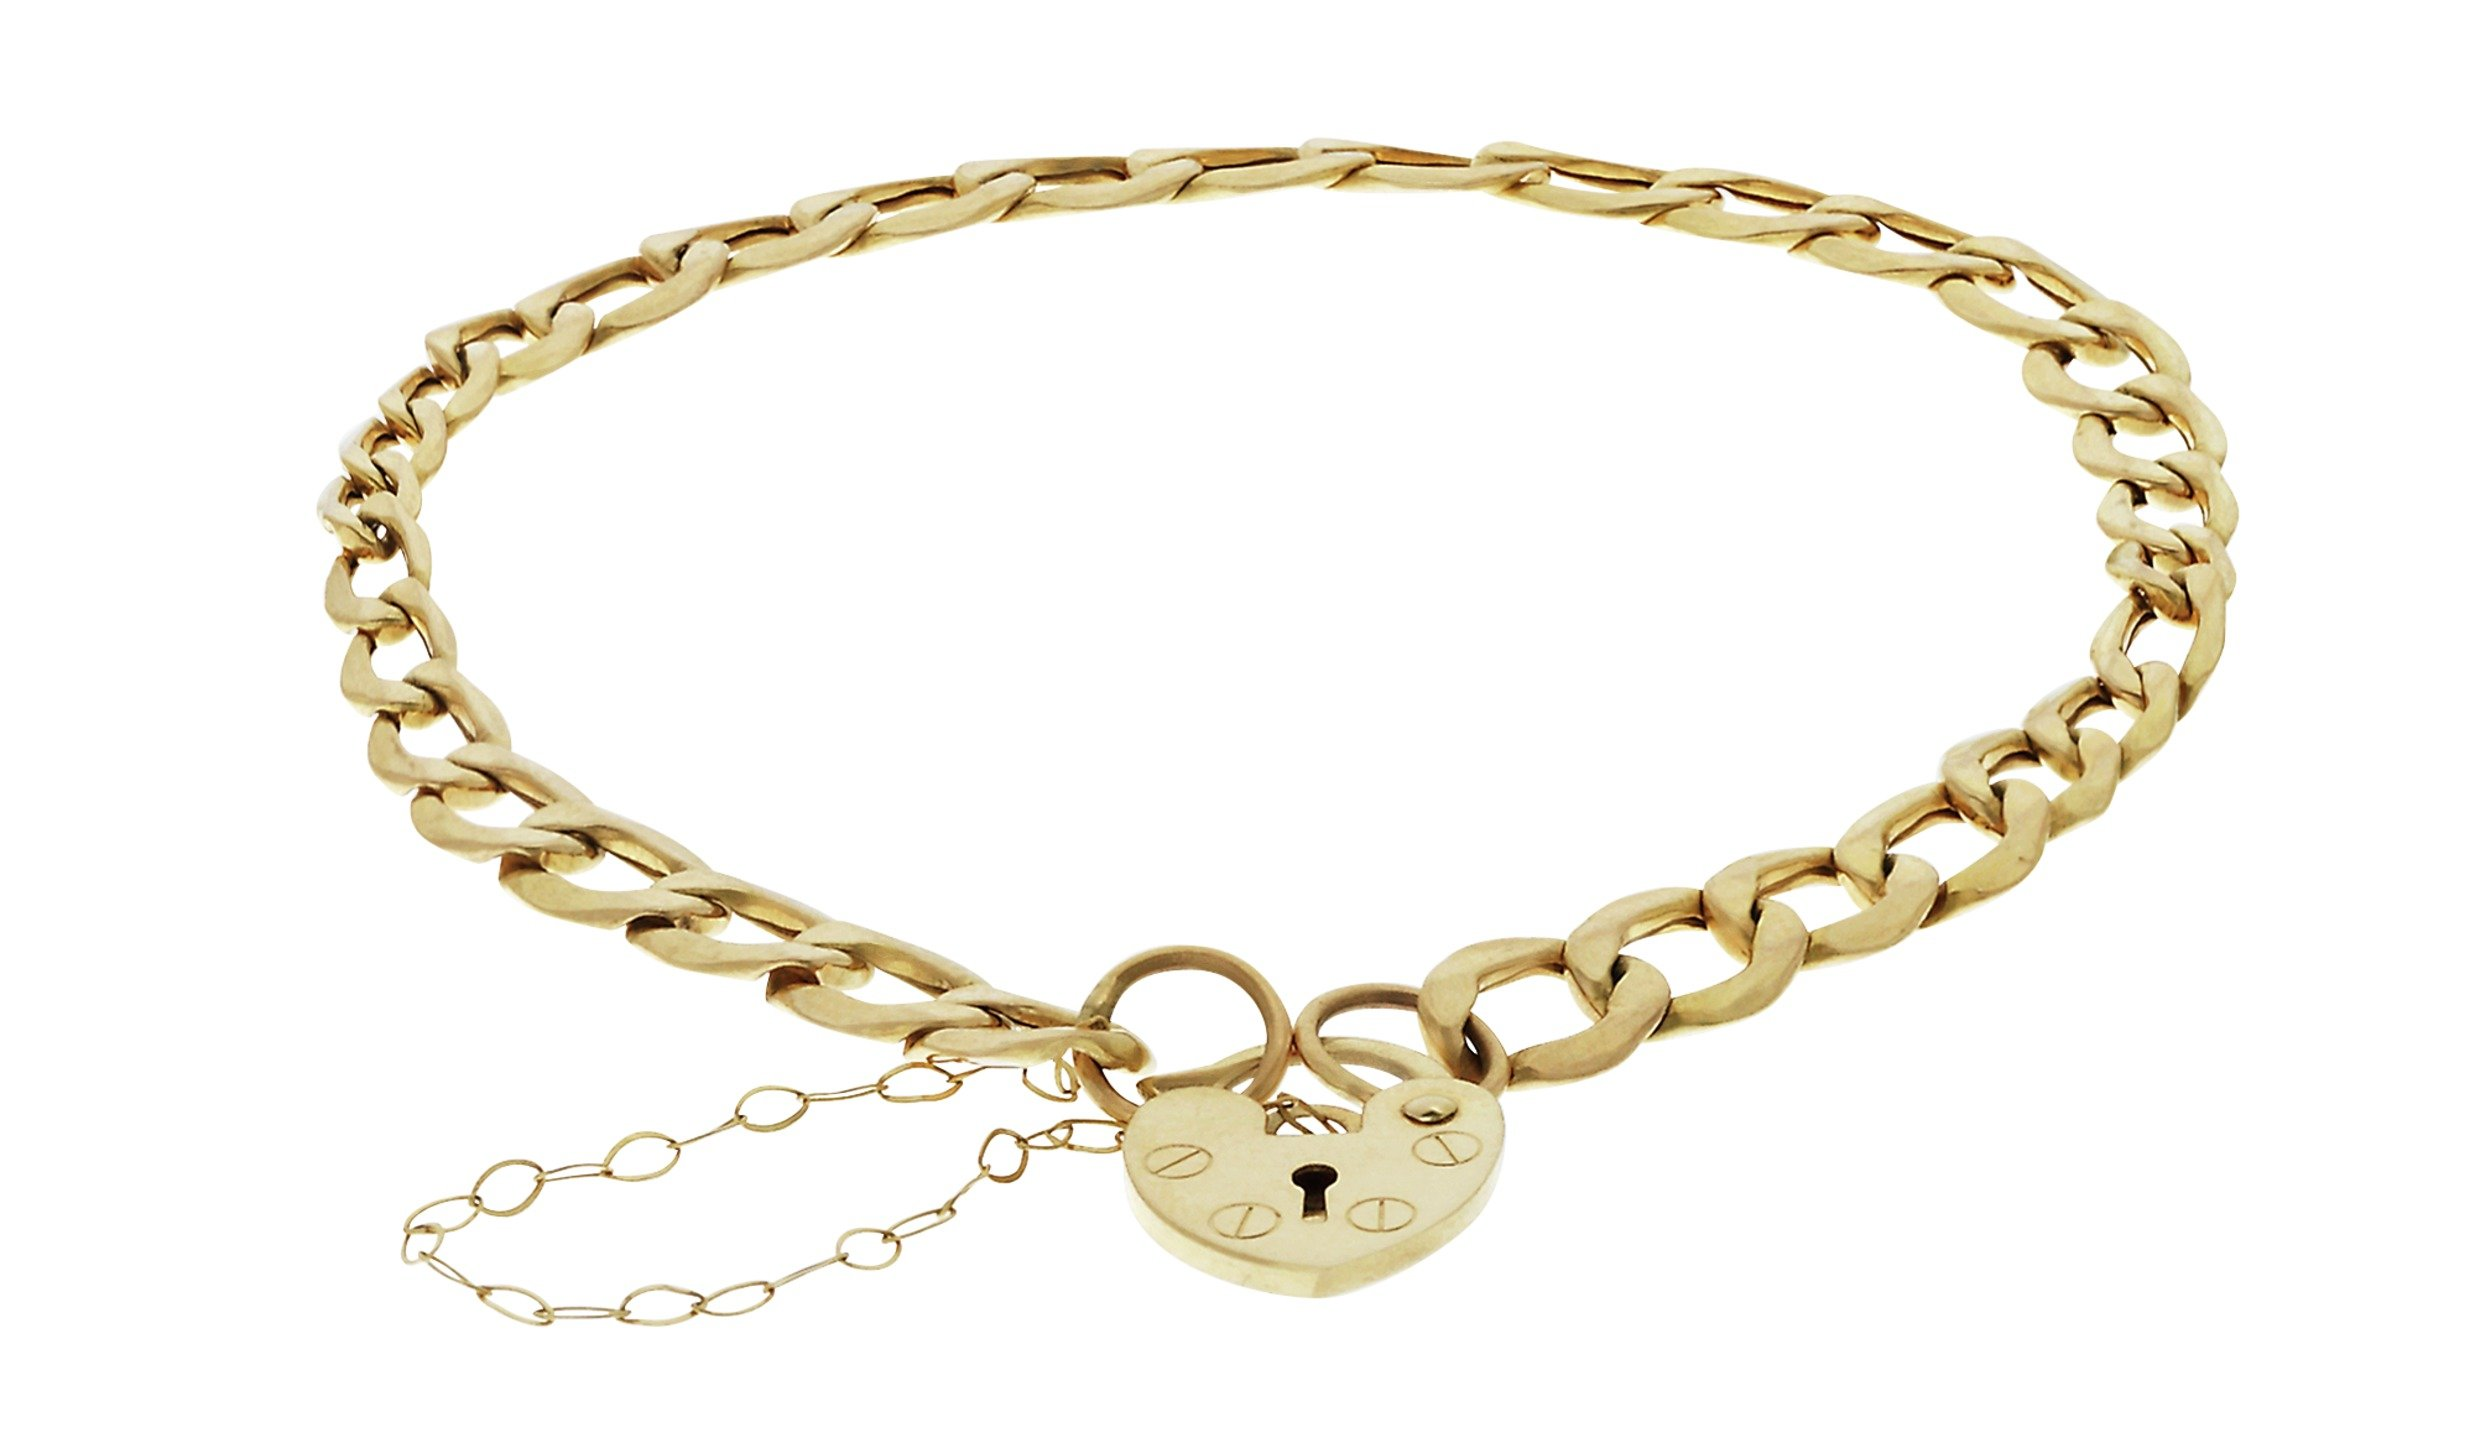 Revere 9ct Gold Curb and Padlock Bracelet